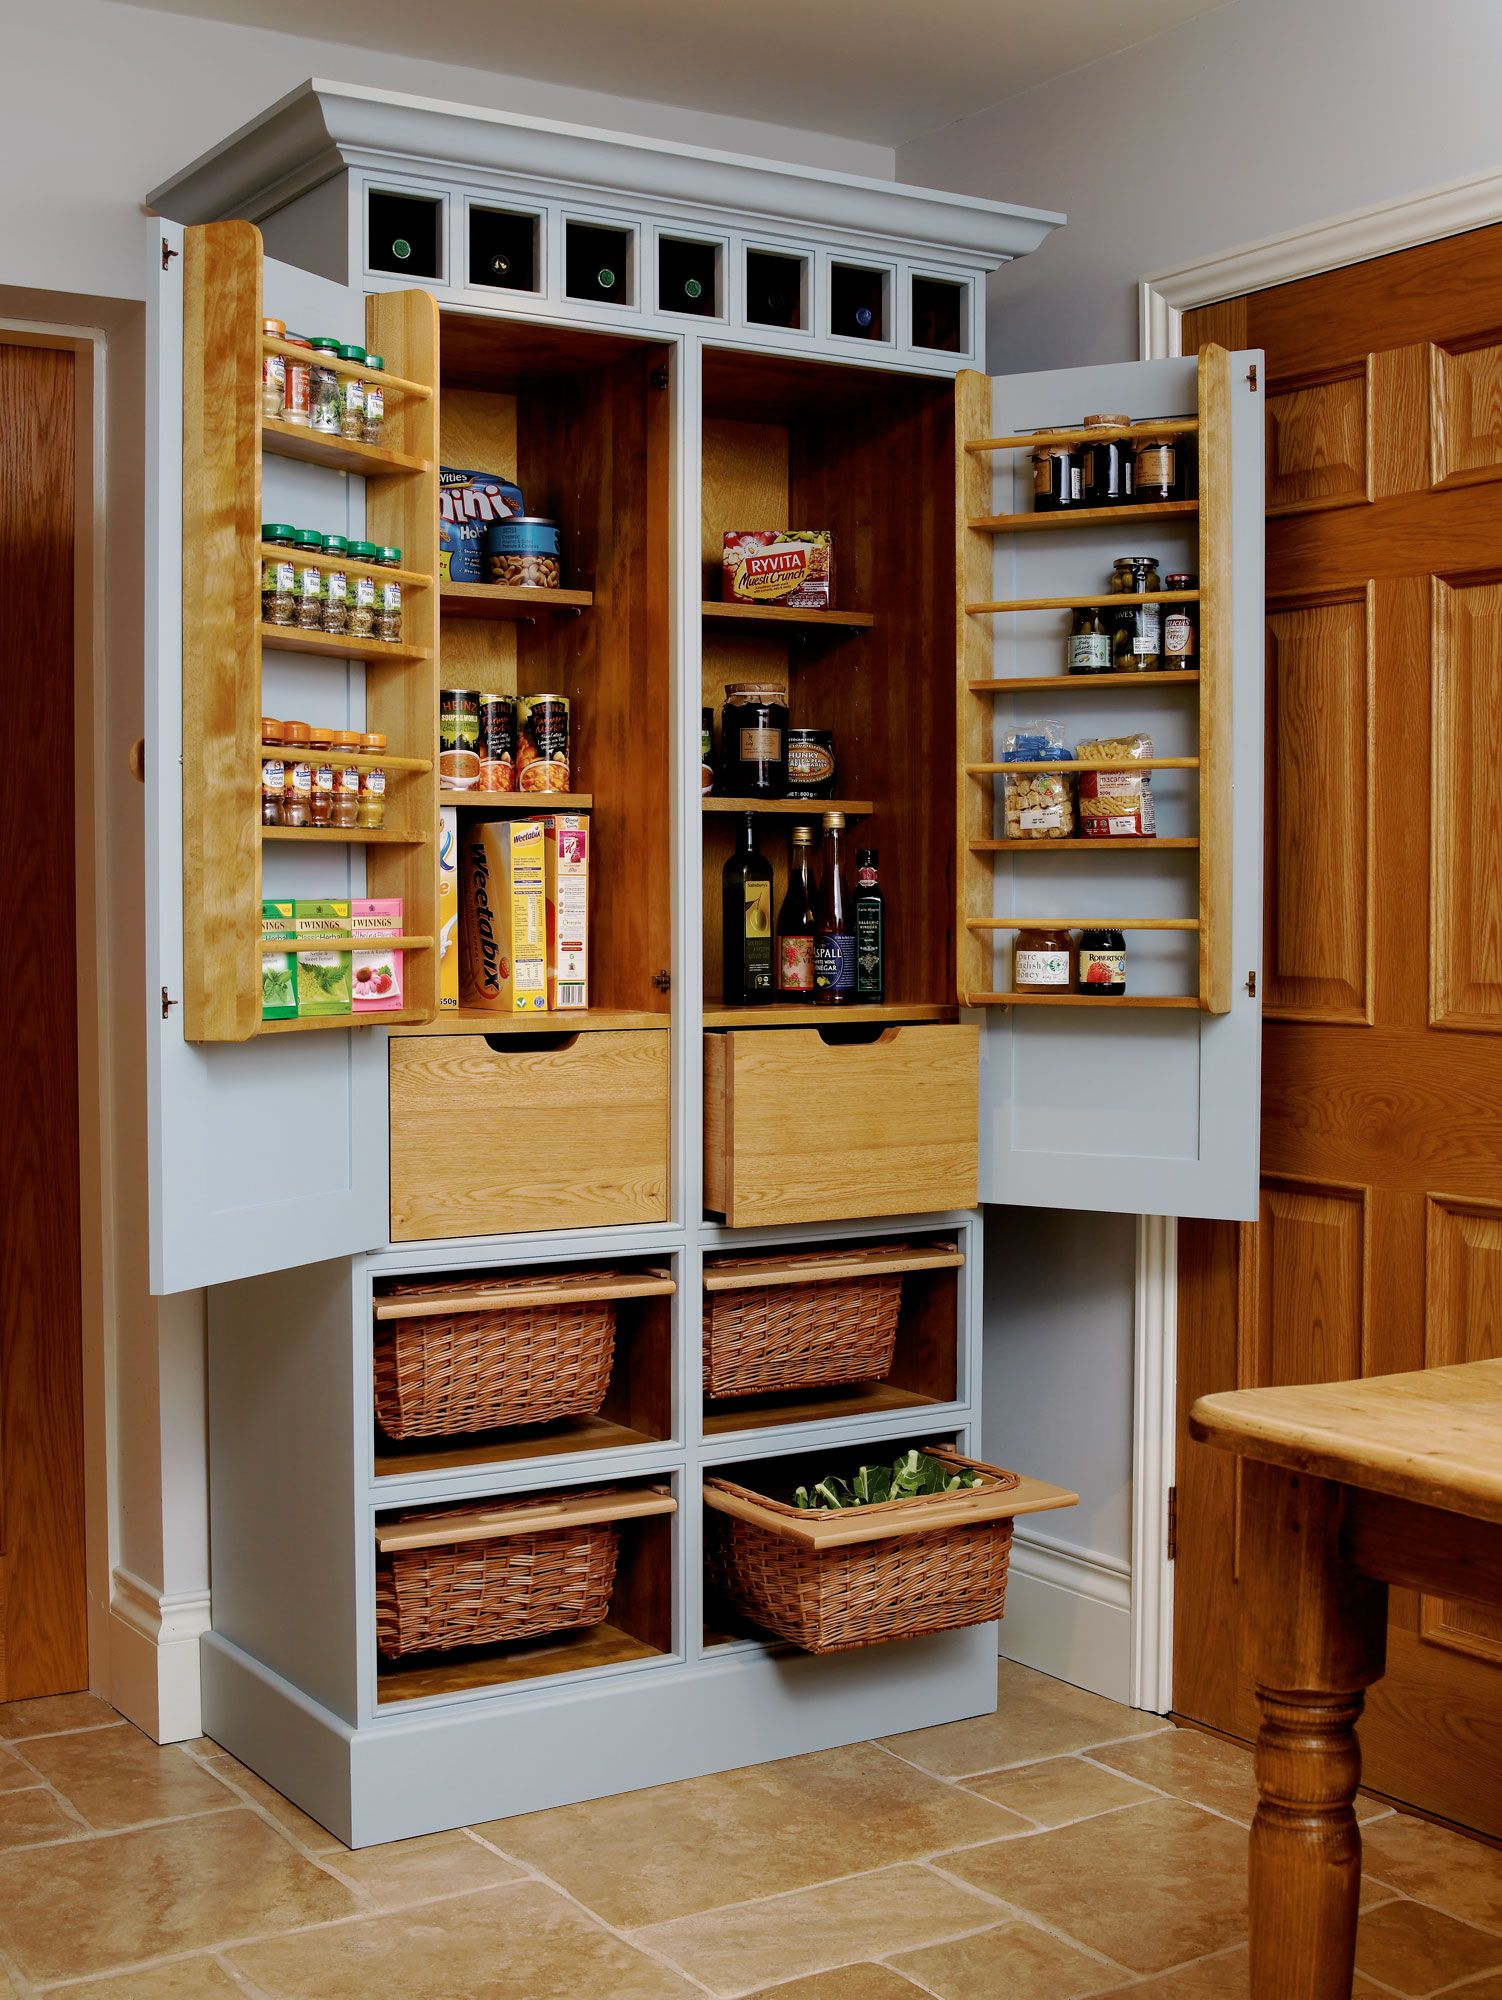 Kitchen Furniture Company Kitchen Larder C The Bespoke Furniture Company Kitchen Ideas